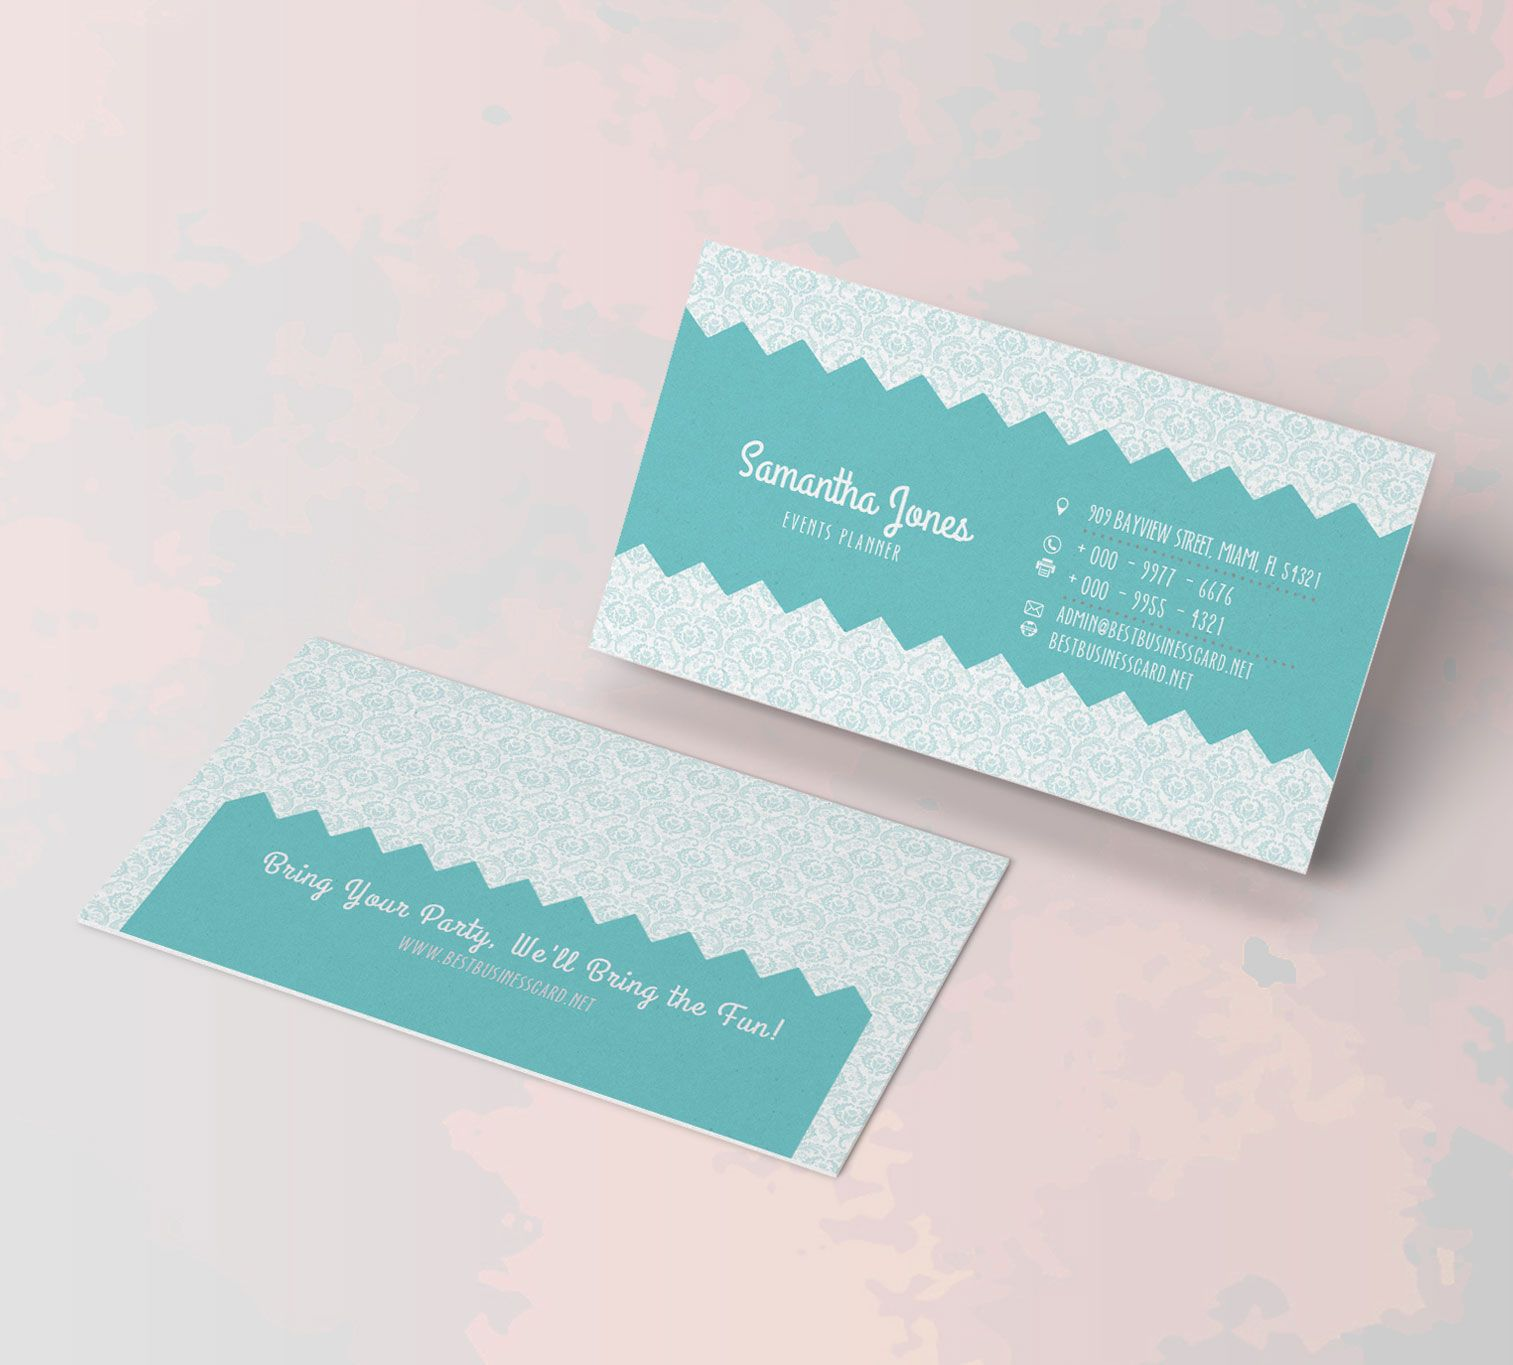 Free business cards for event planners best business cards free psd templates party planner business cards magicingreecefo Images